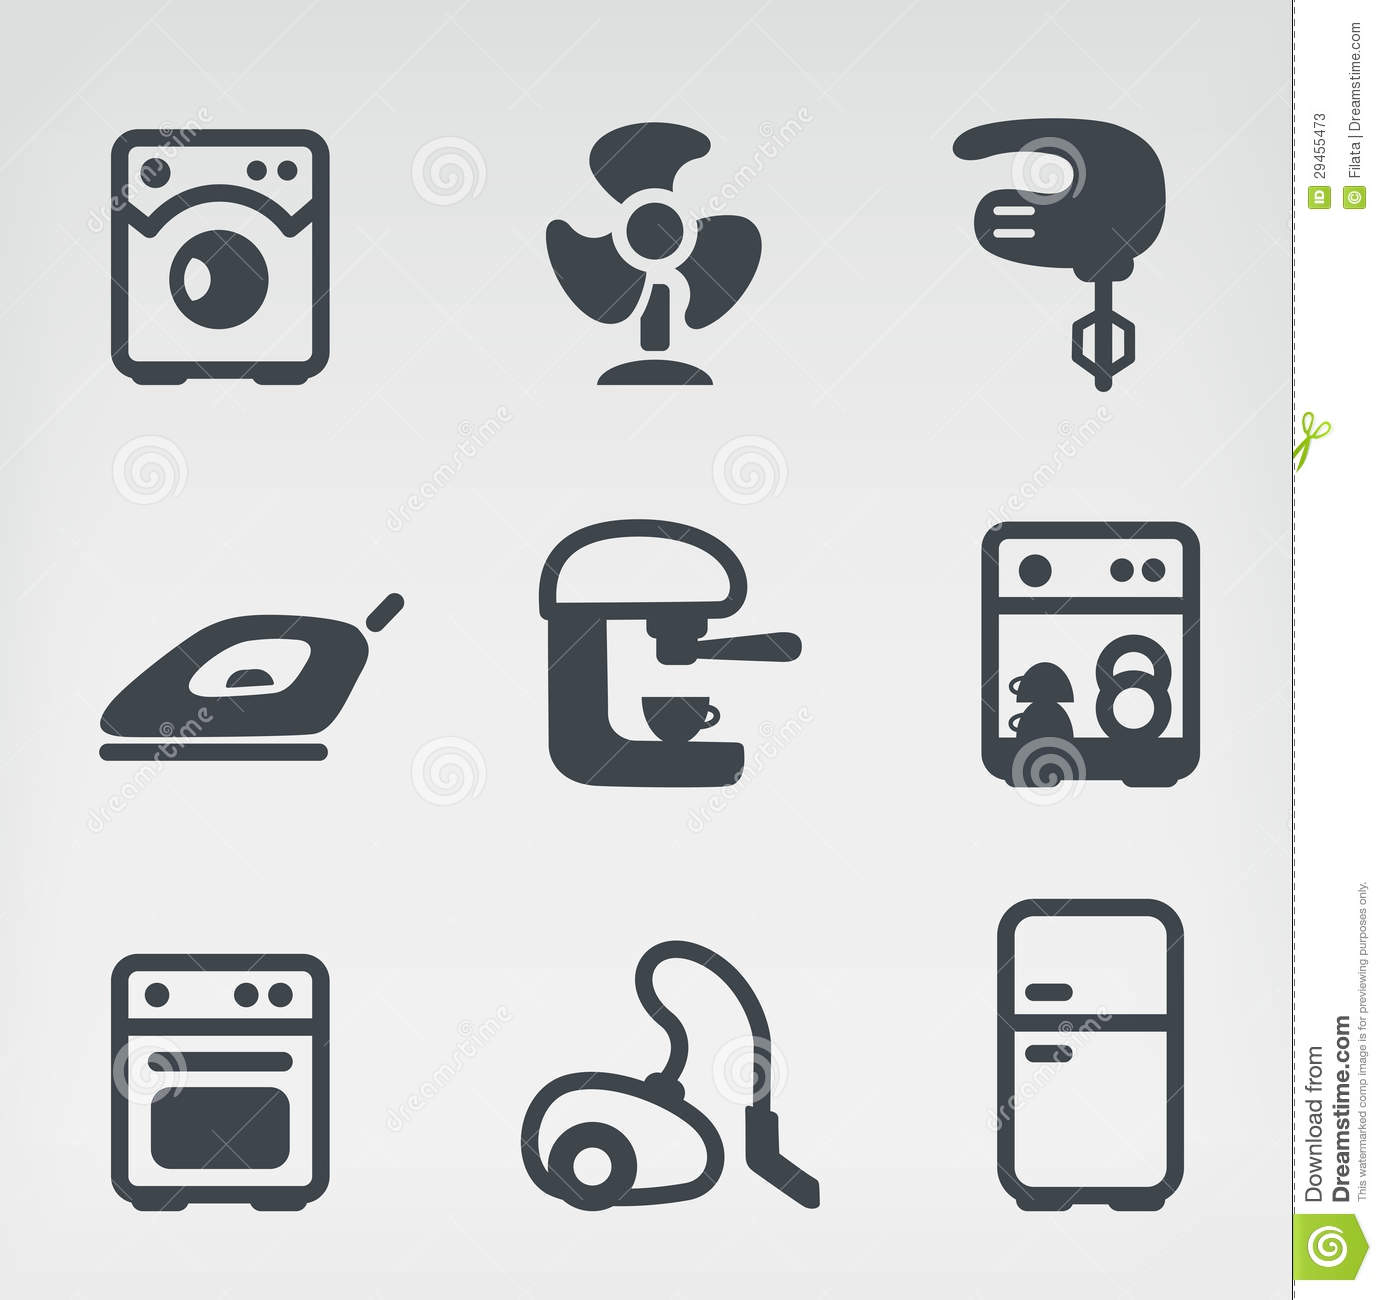 Home appliances icon set stock vector. Image of kitchen